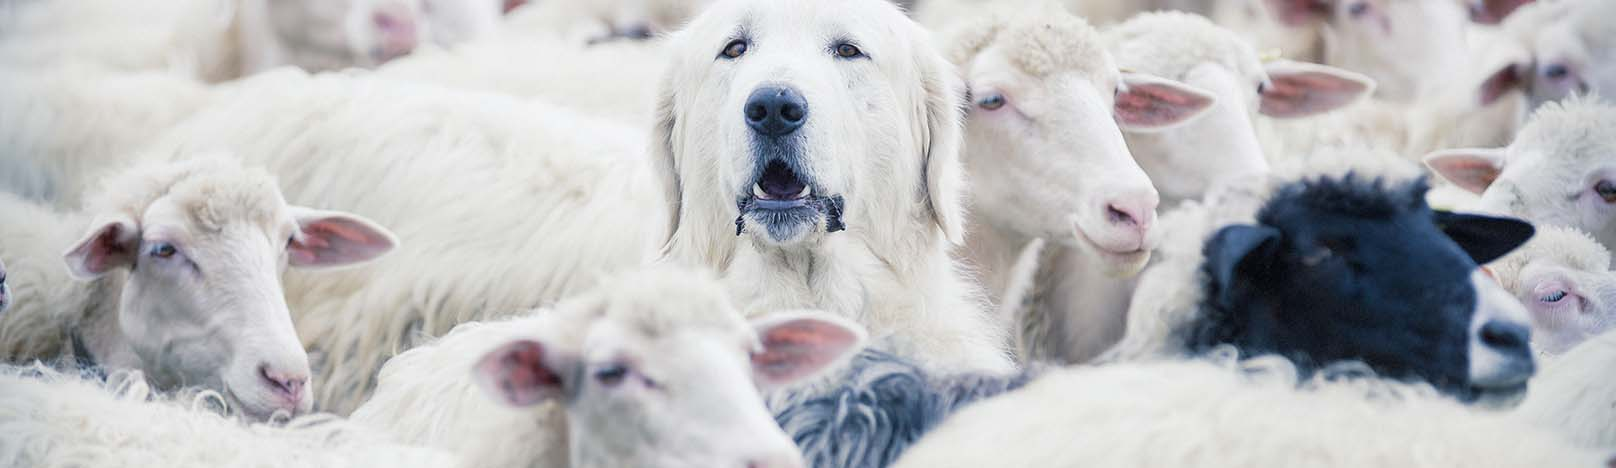 Dog among sheep